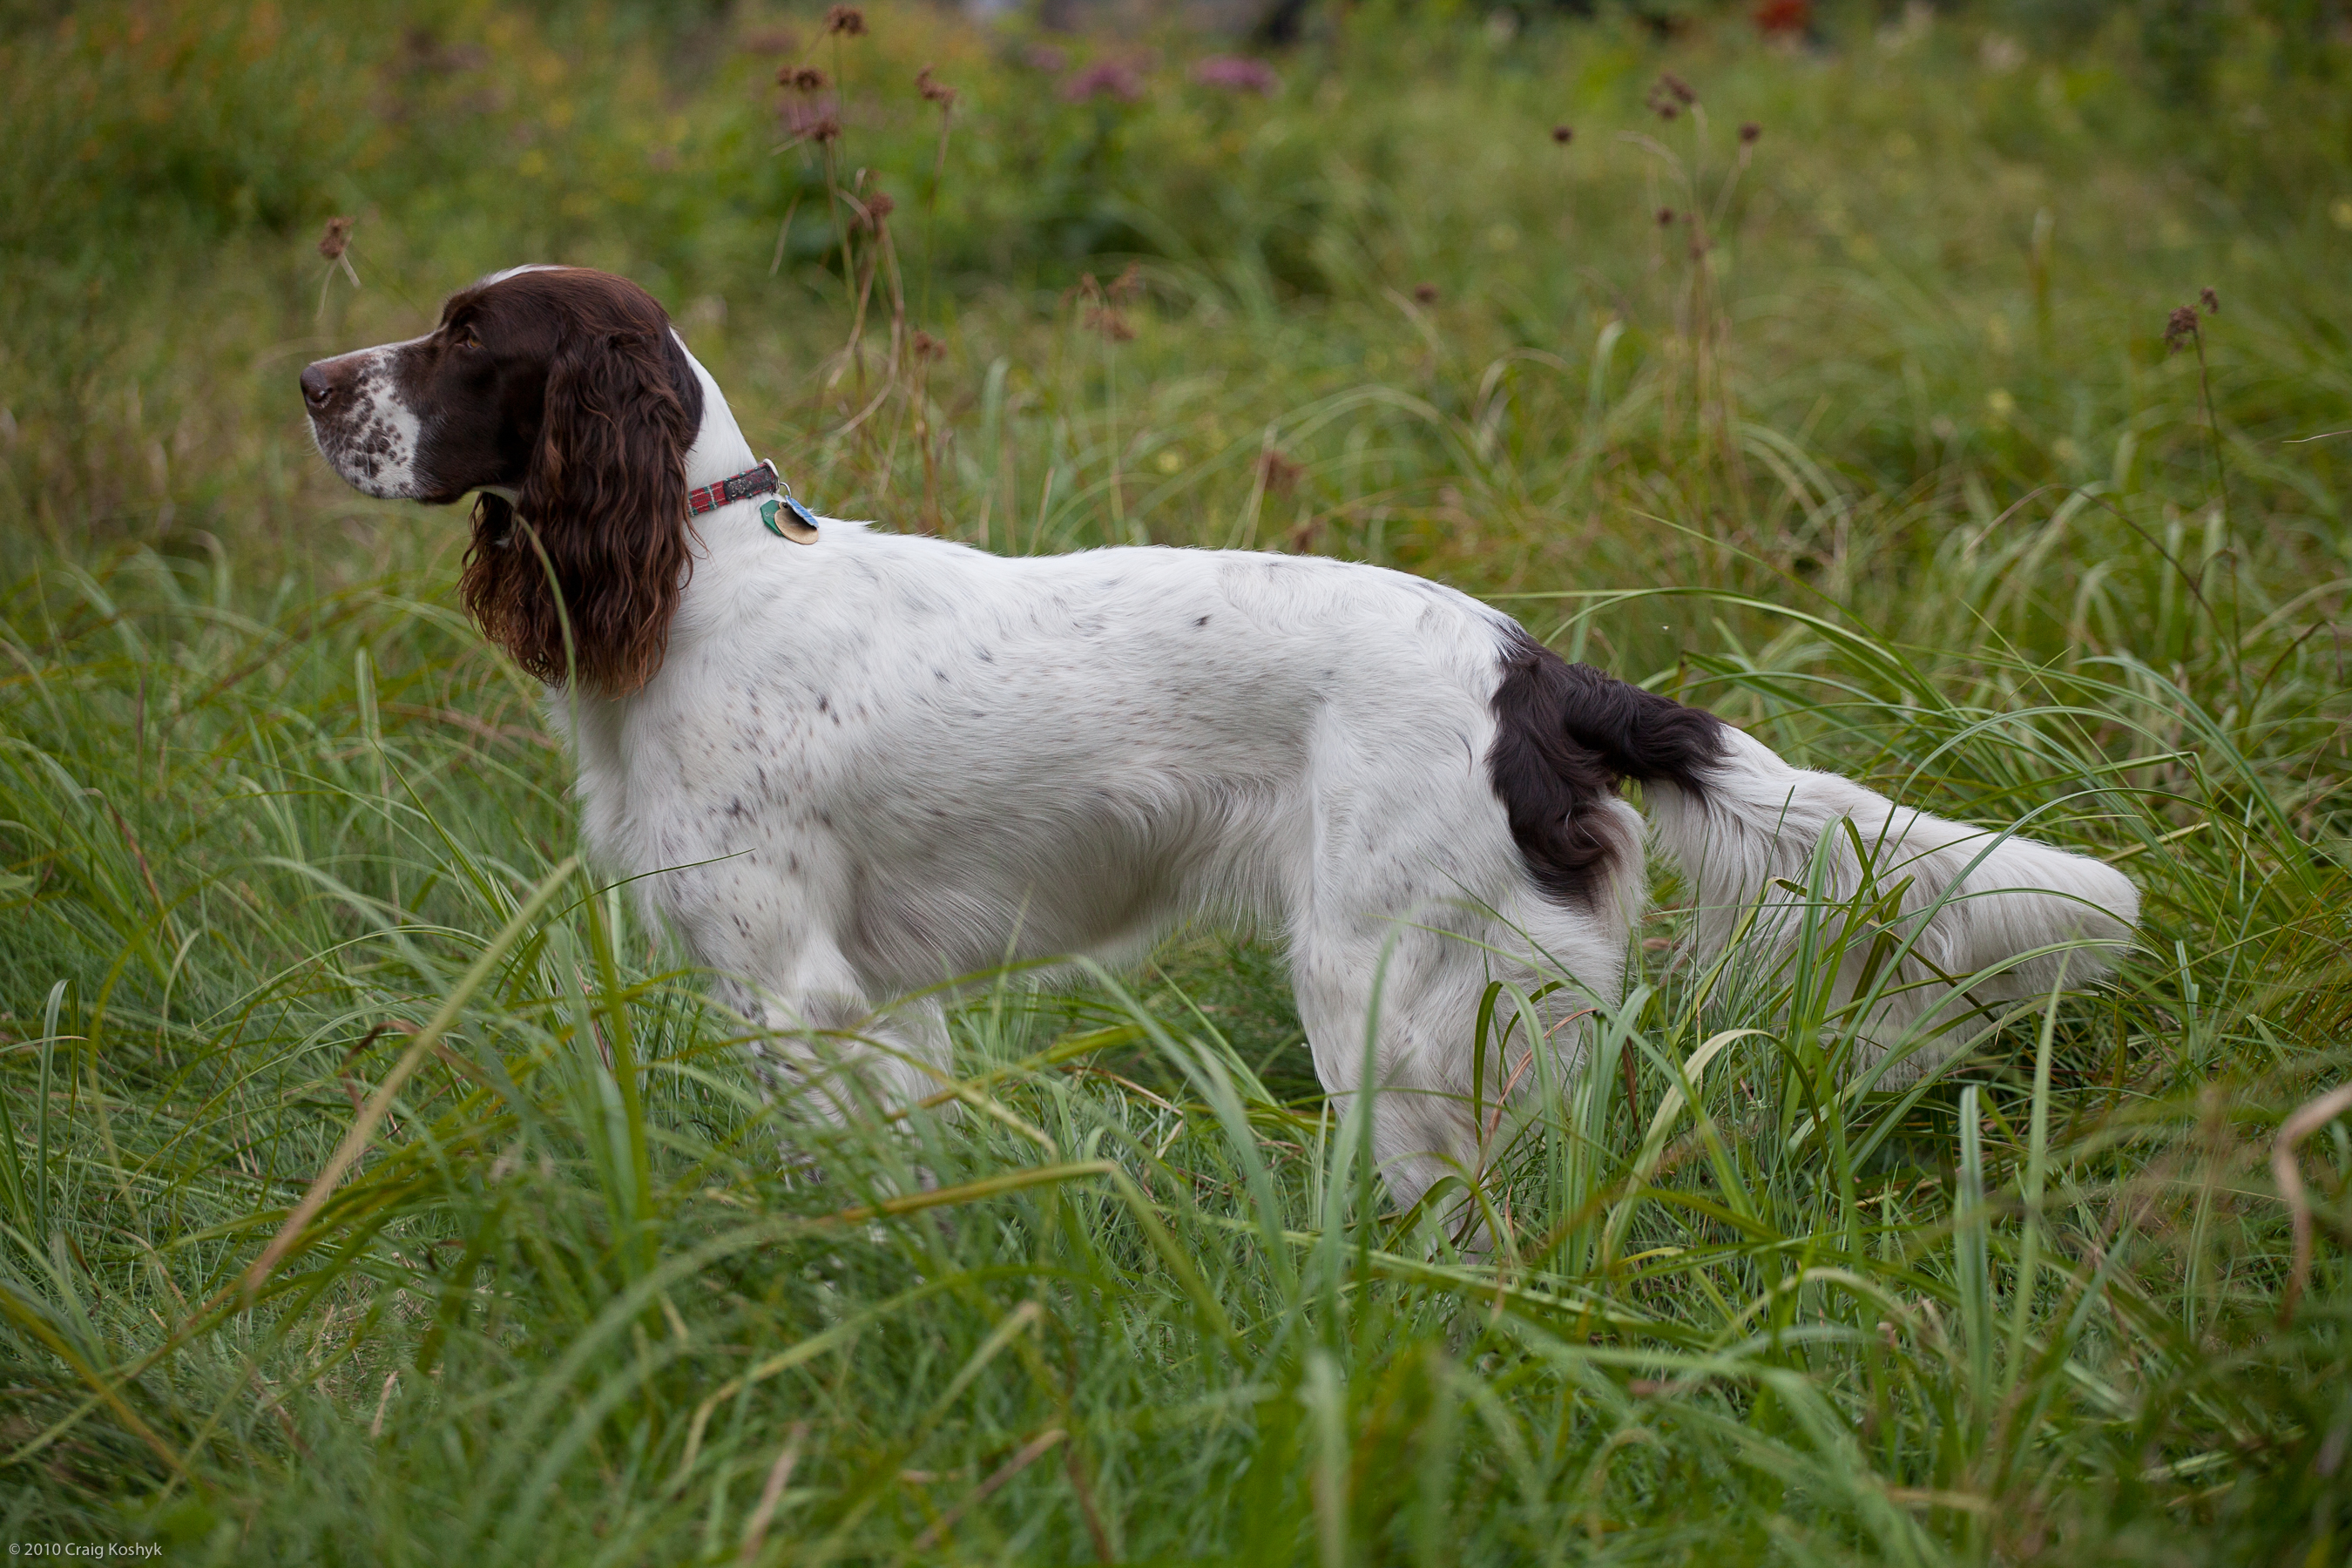 Saint-Usuge Spaniel Puppies: Saint Usuge French Spaniel Pagneul Franais Epagneul Francais Breed